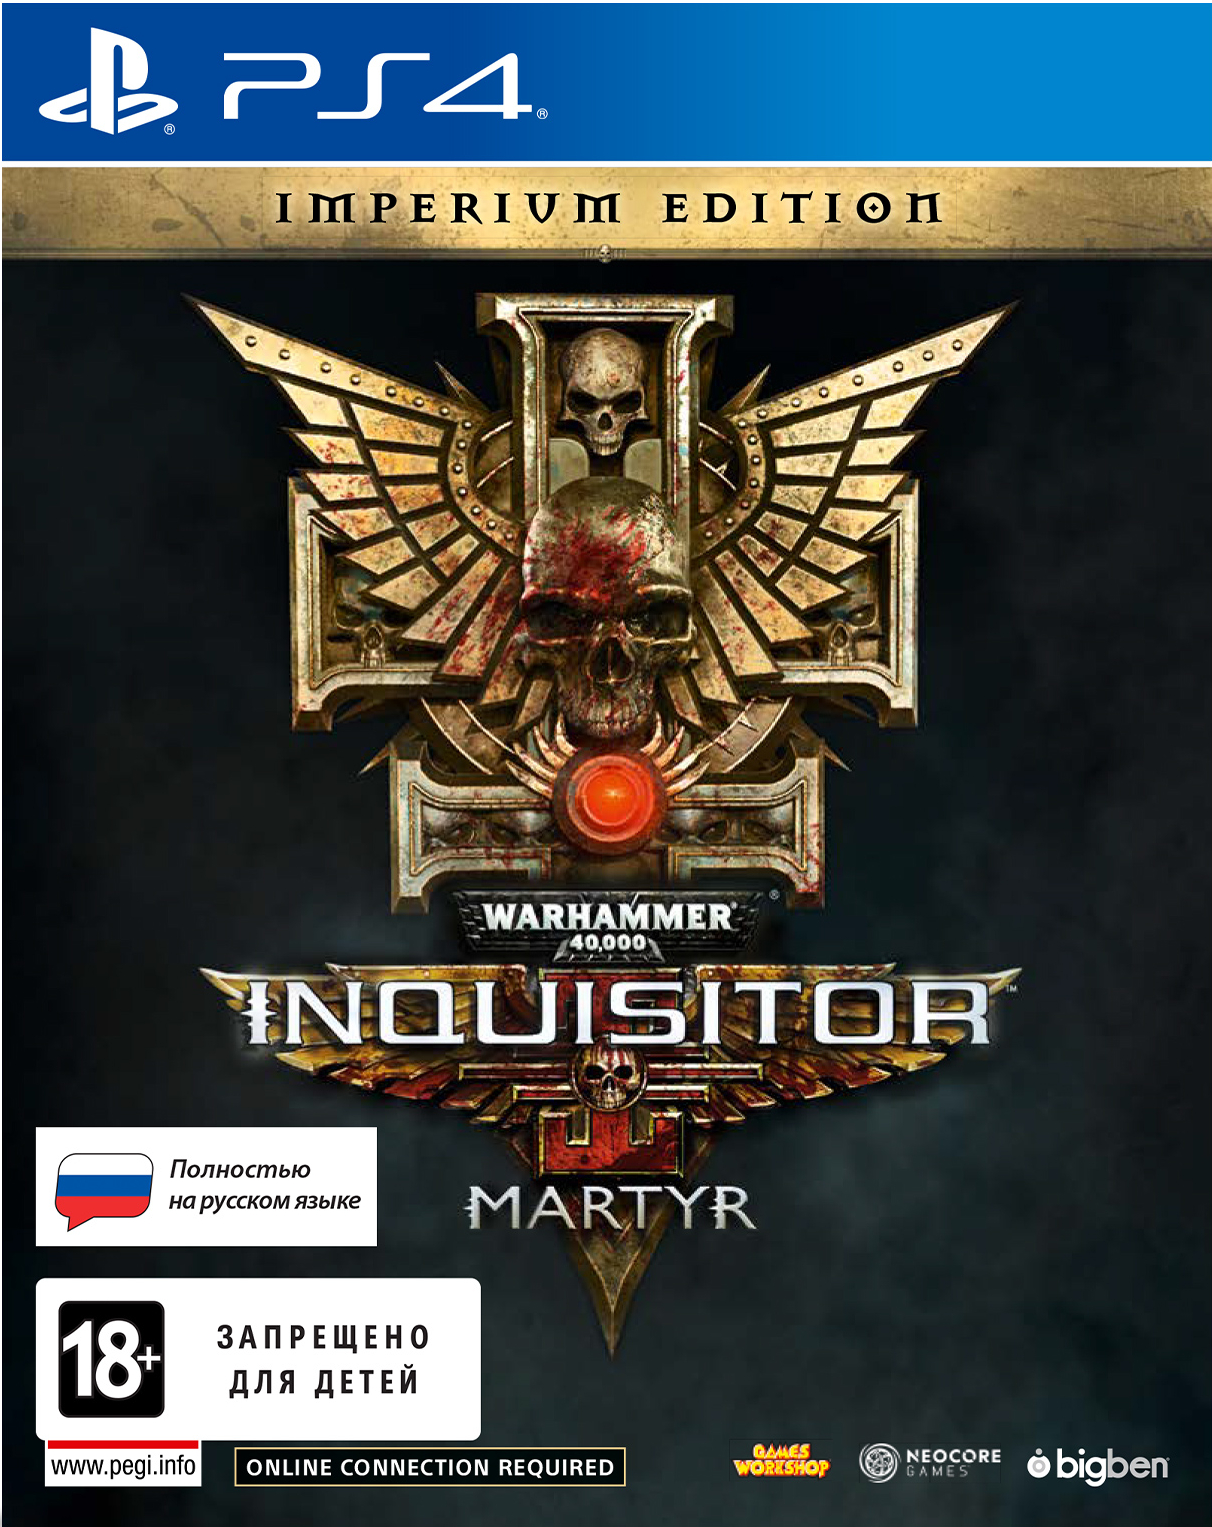 Warhammer 40,000: Inquisitor – Martyr. Imperium Edition [PS4] bigben interactive xb1hdmiflat